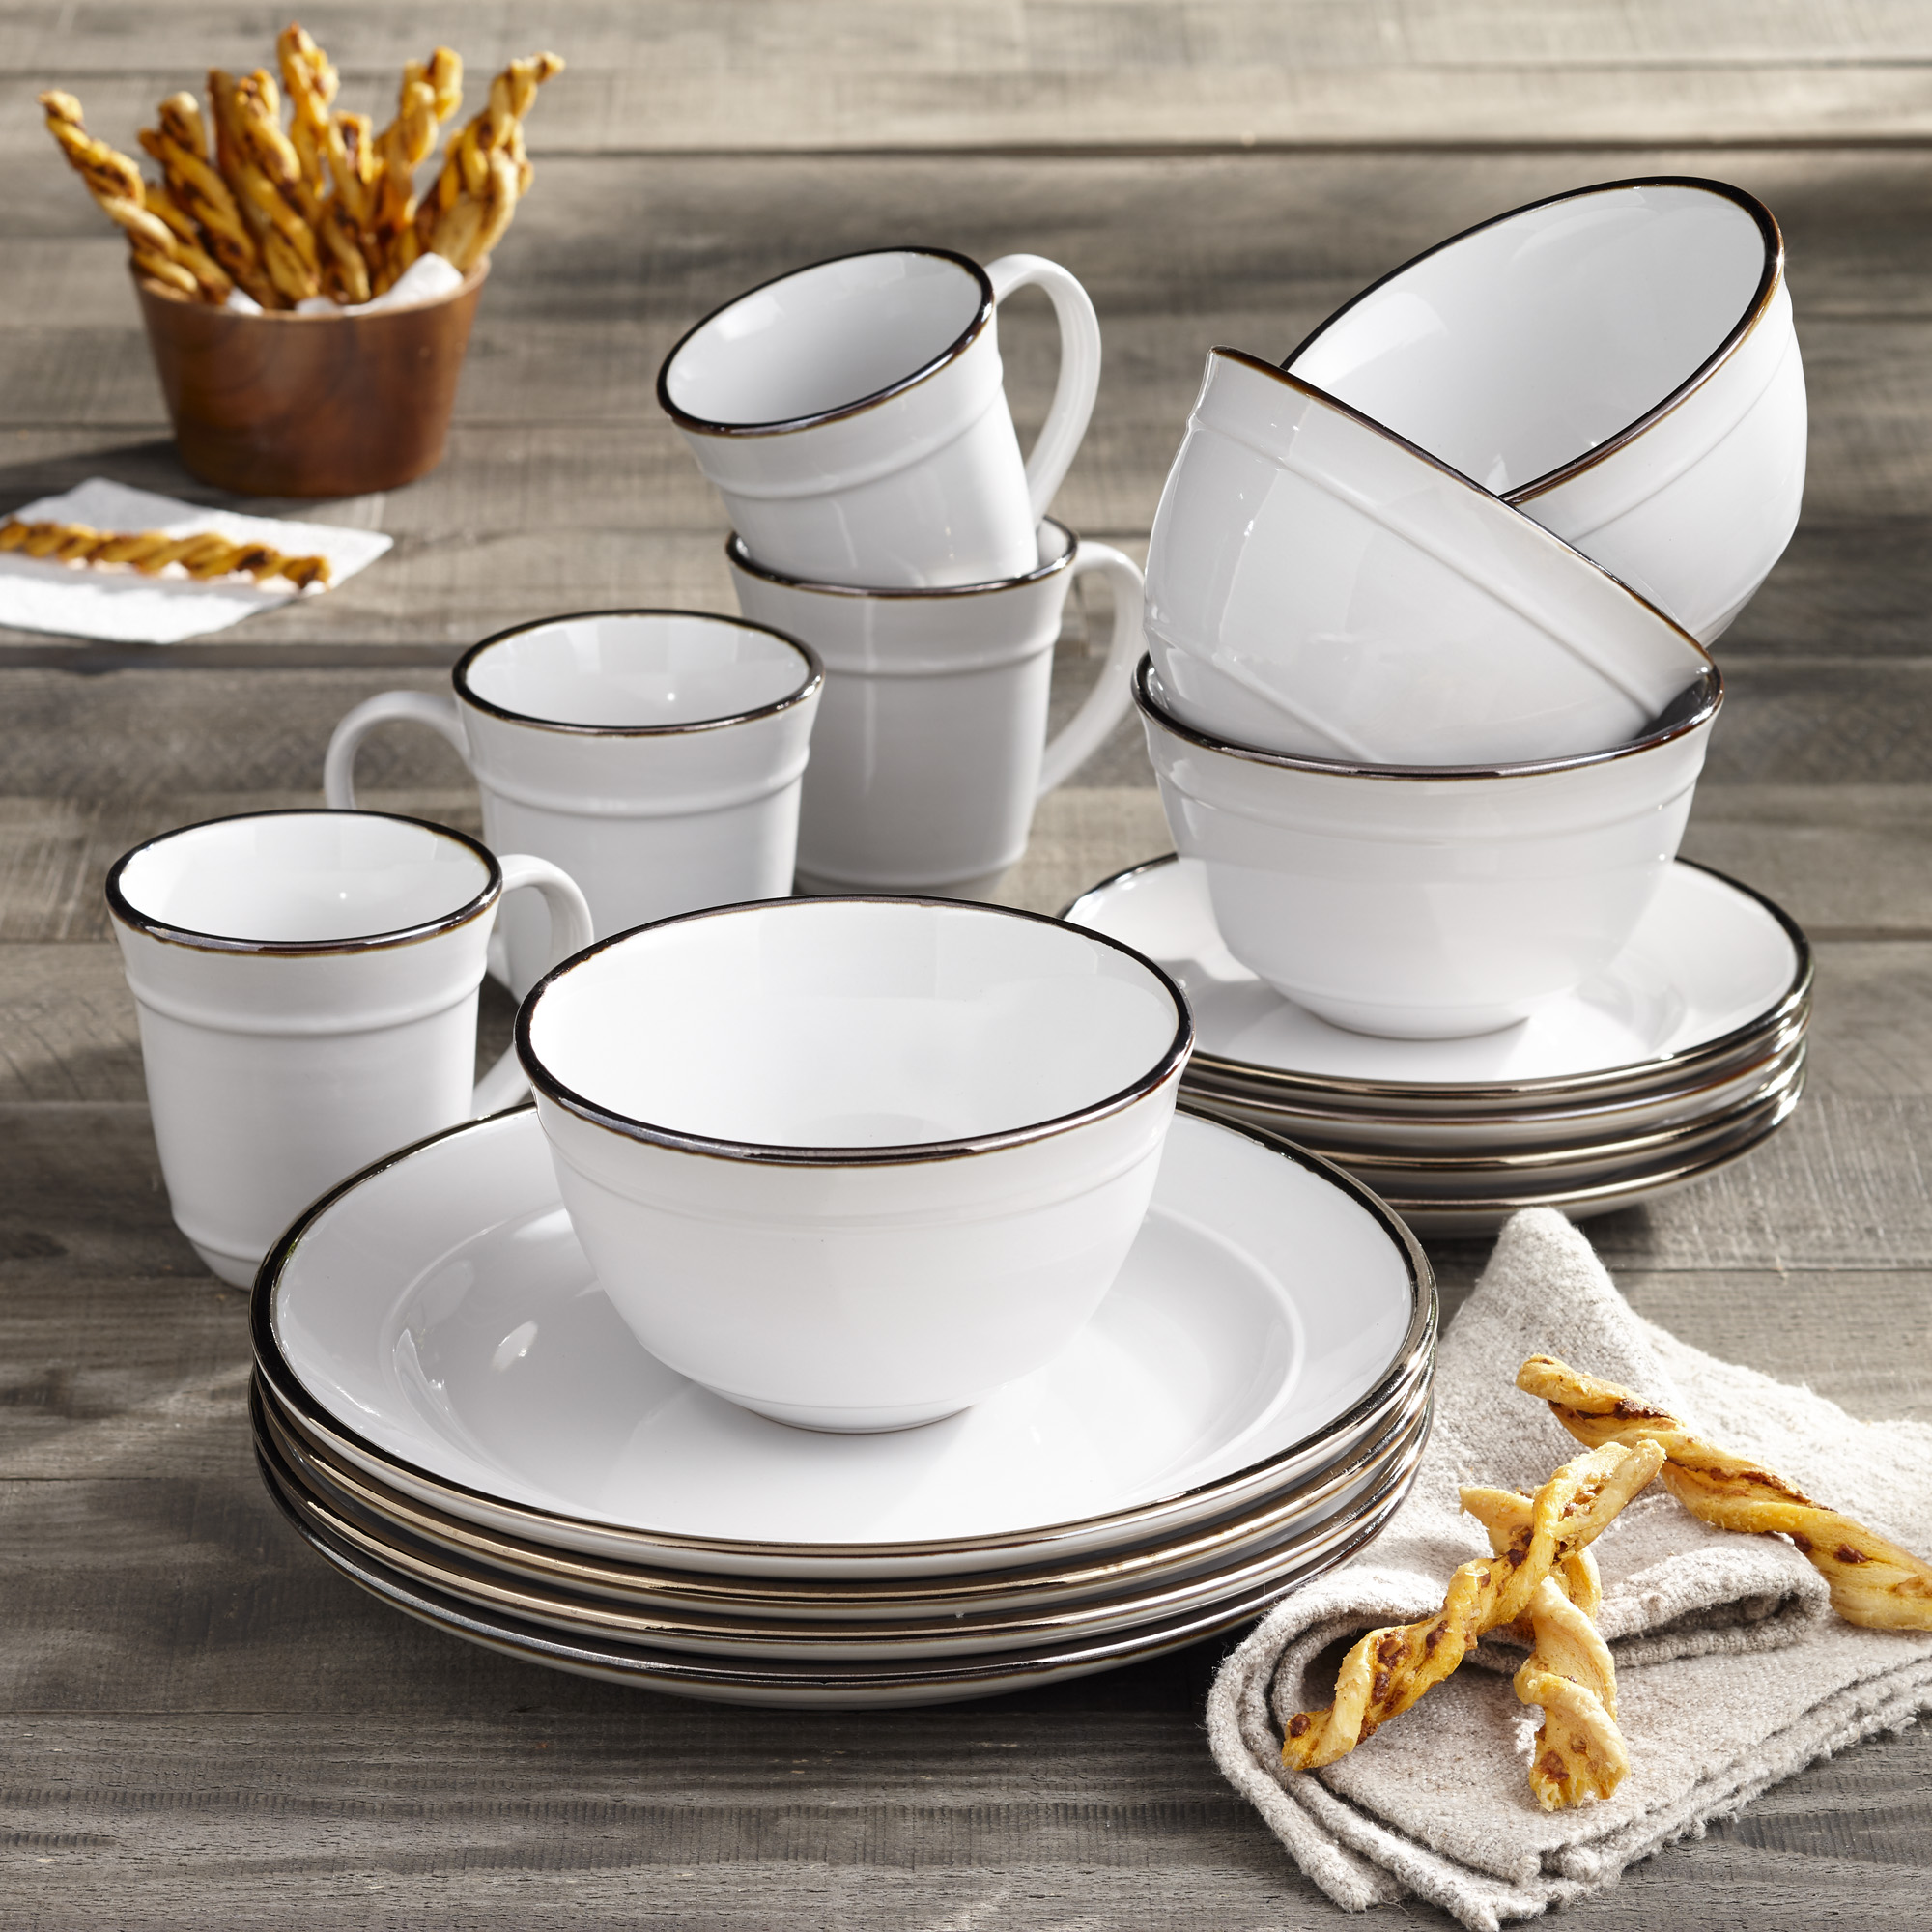 Better Homes & Gardens Farma 16 Piece Dinnerware Set, White